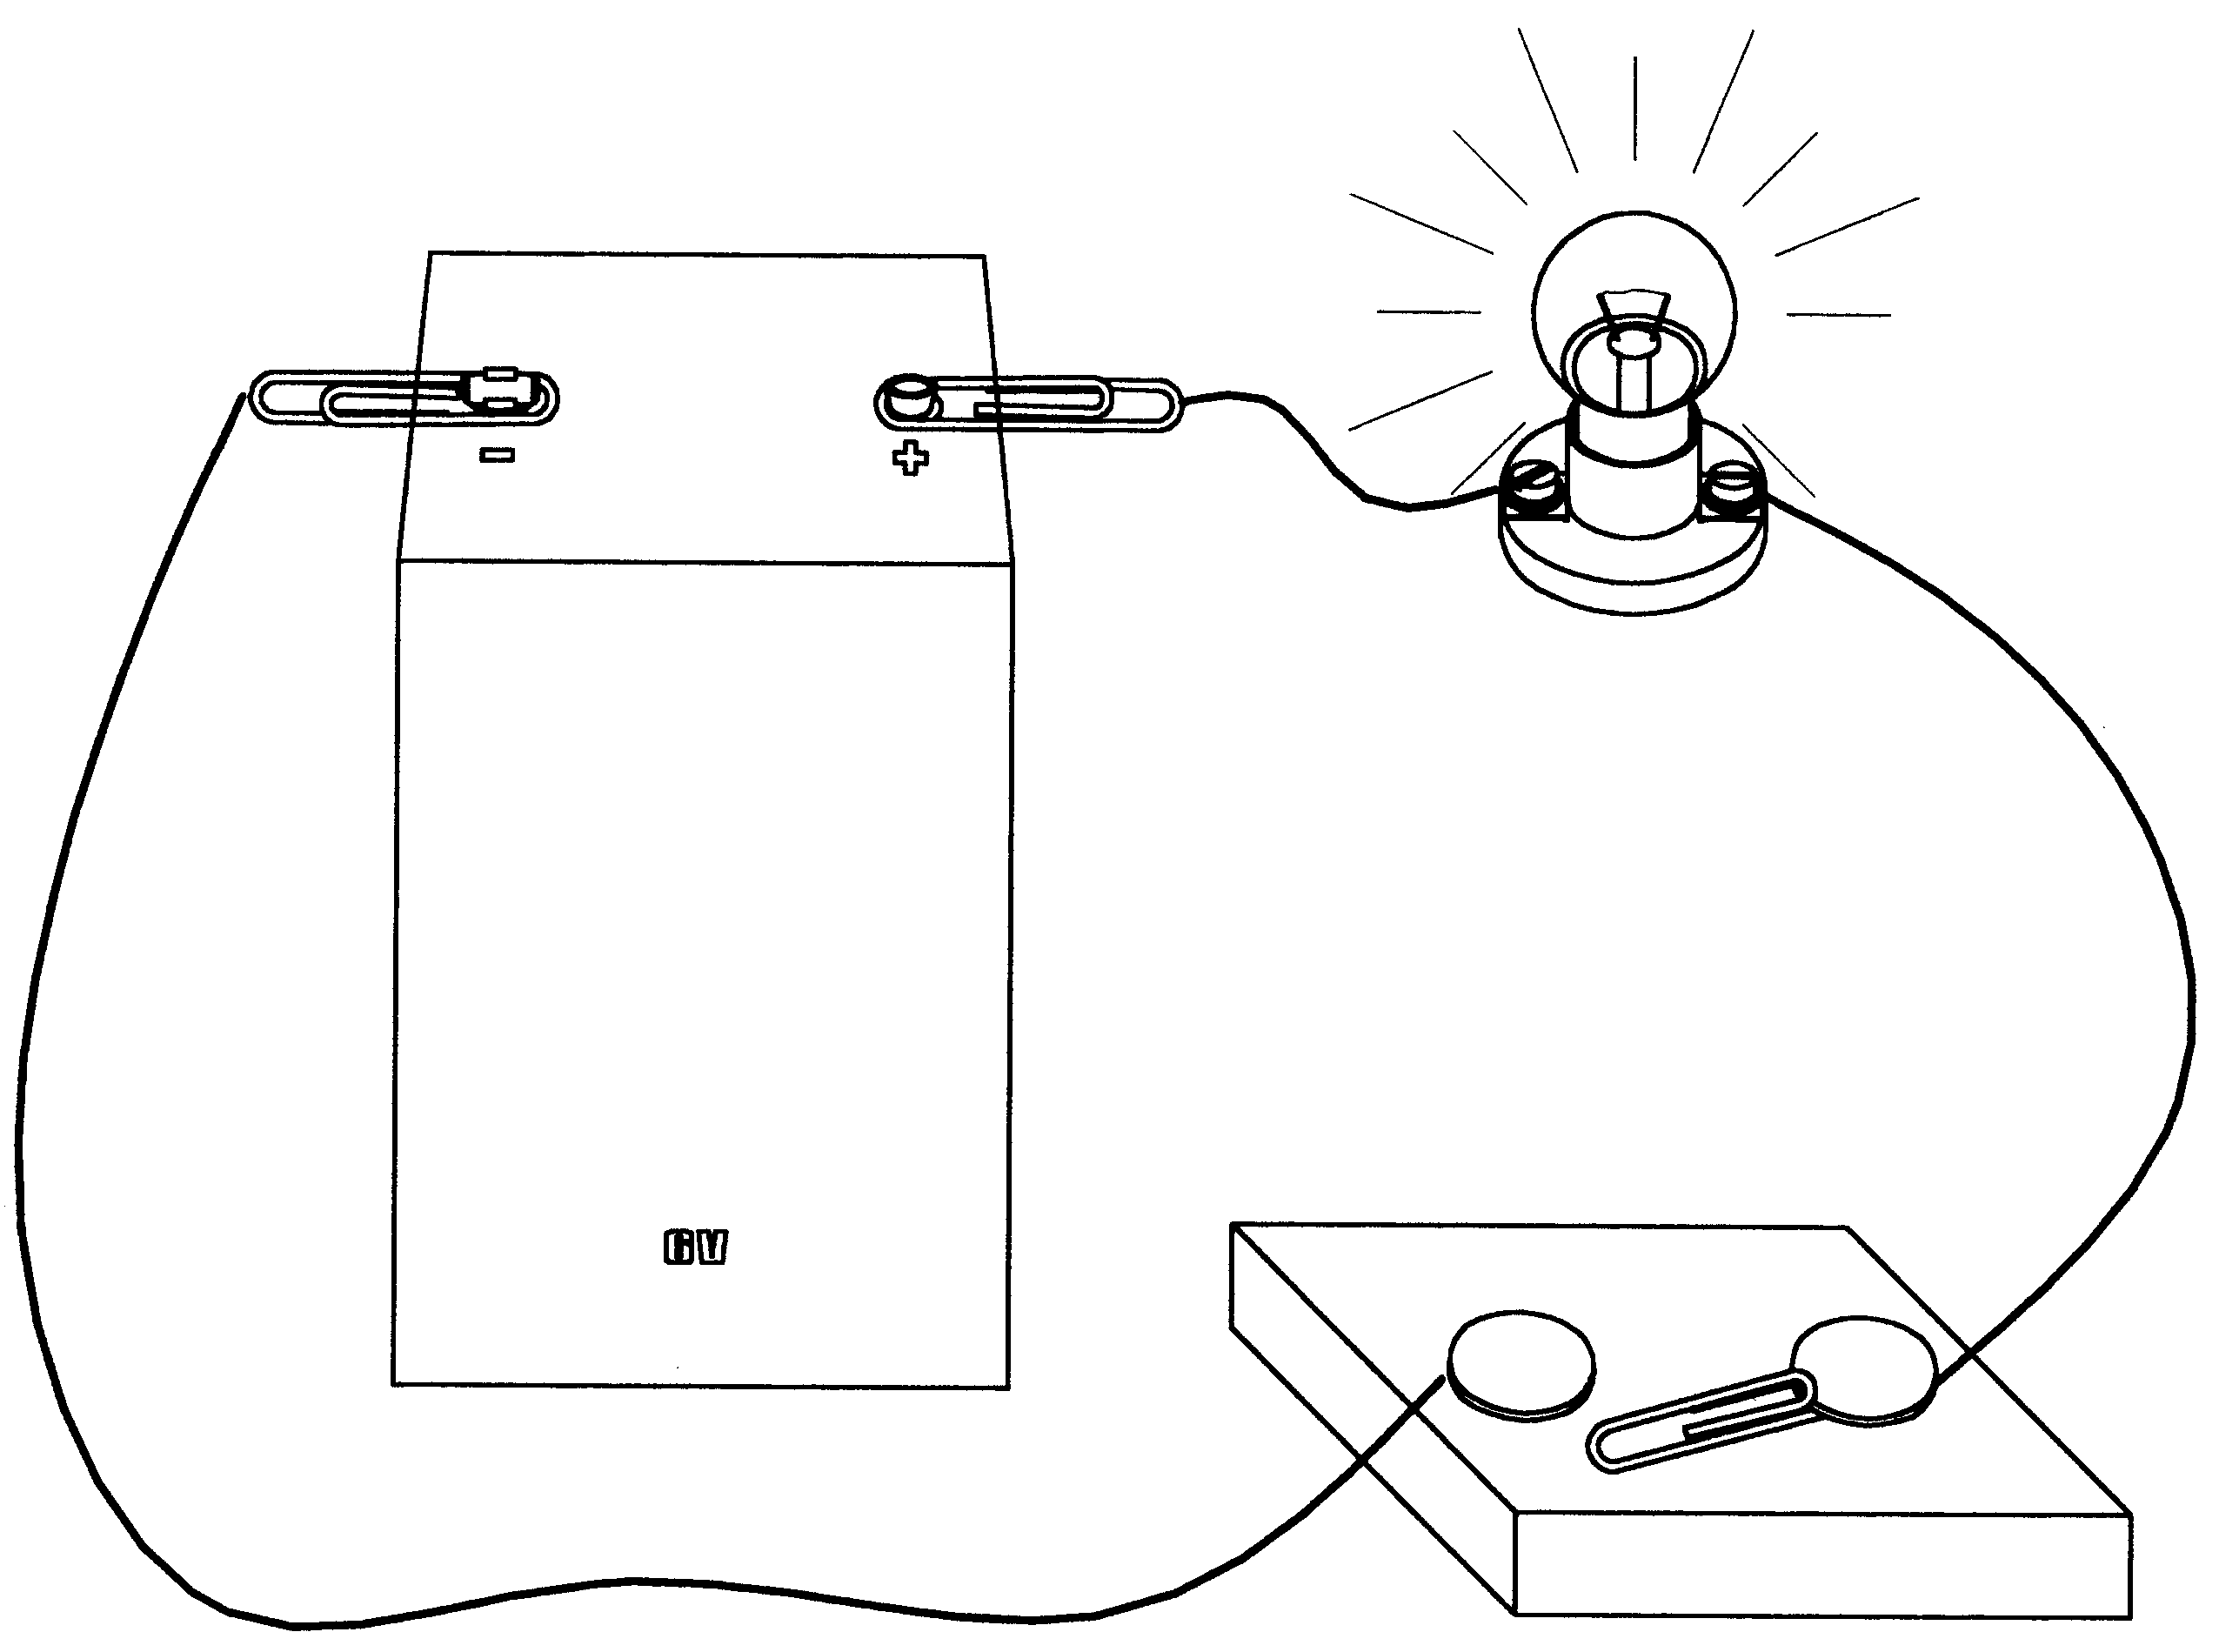 Light Bulb Diagram Parts Of A Light Bulb And Their Functions